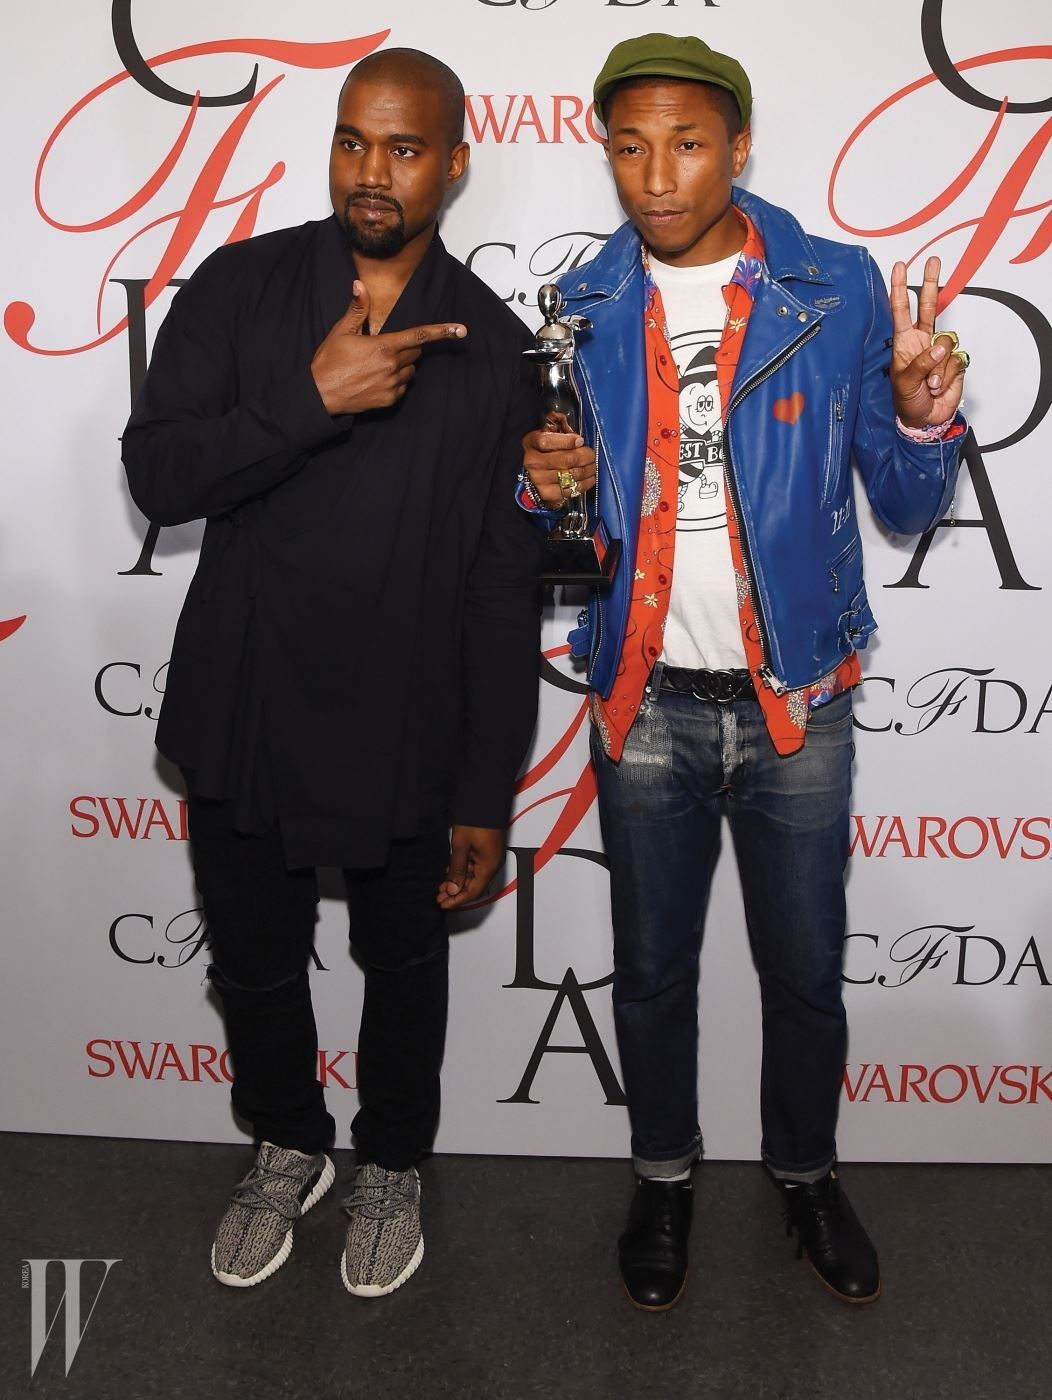 NEW YORK, NY - JUNE 01:  Rapper Kanye West and singer Pharrell Williams pose on the winners walk at the 2015 CFDA Fashion Awards at Alice Tully Hall at Lincoln Center on June 1, 2015 in New York City.  (Photo by Larry Busacca/Getty Images)